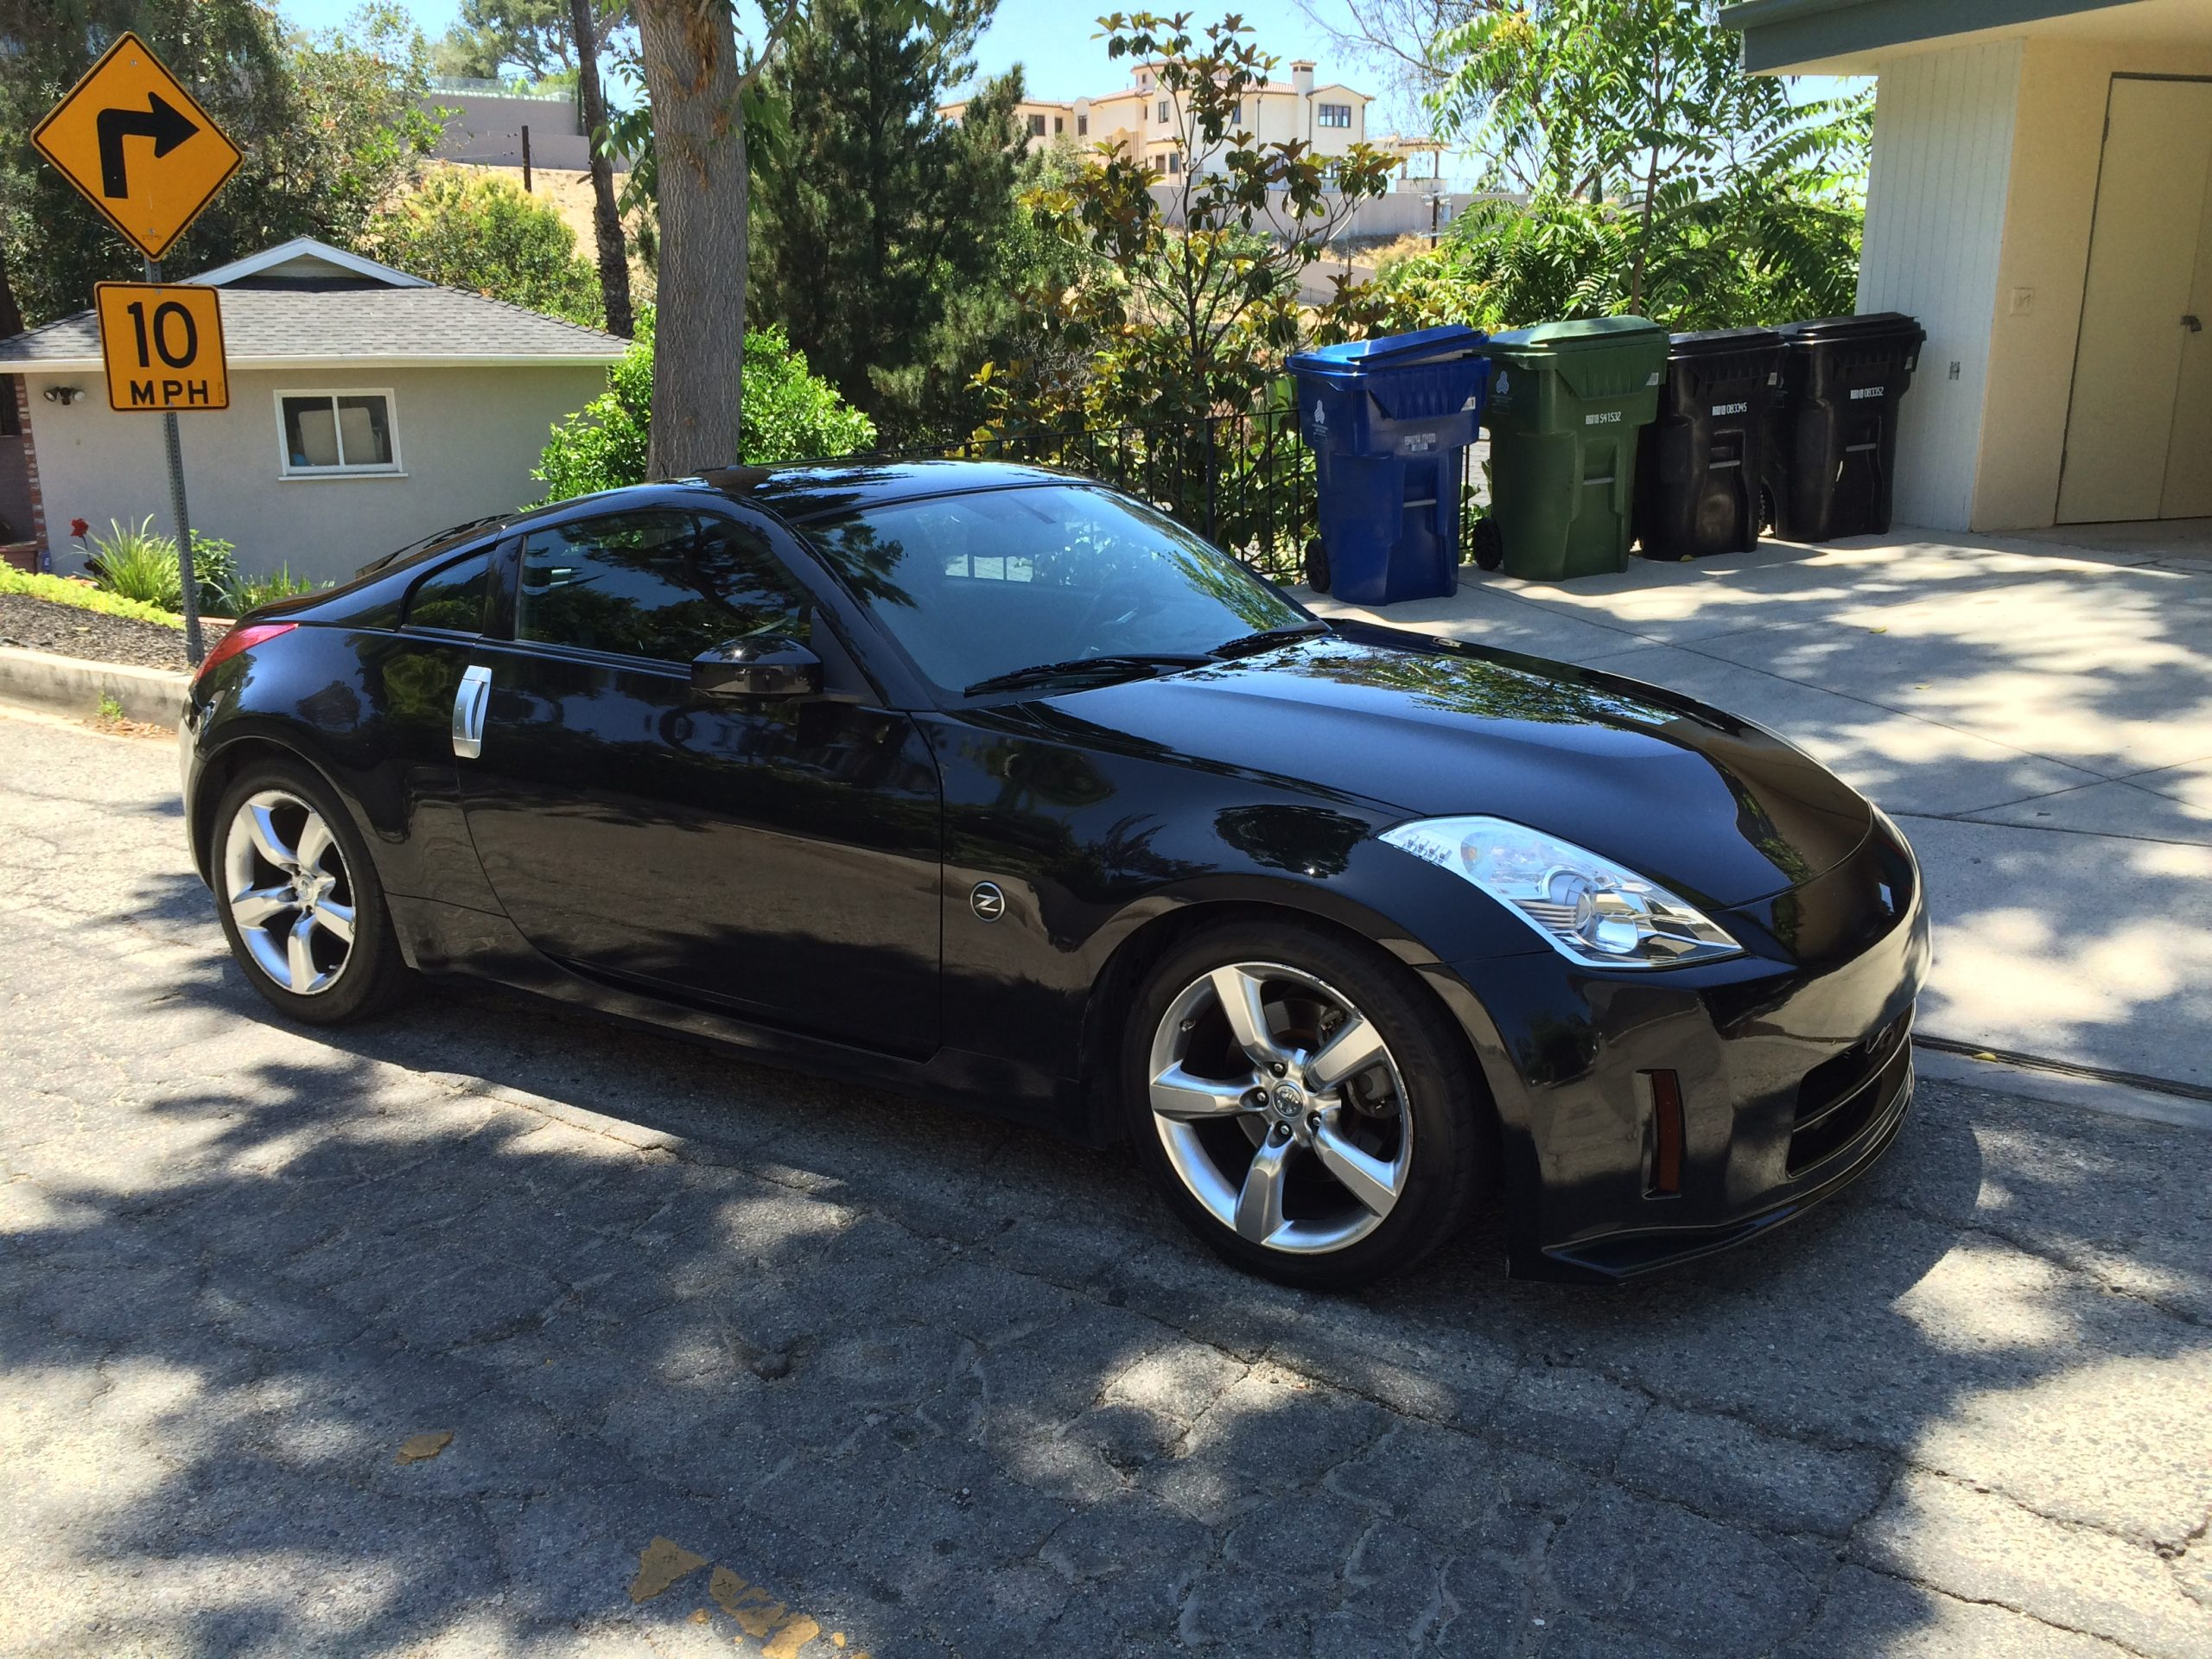 USED BEST NISSAN CARS